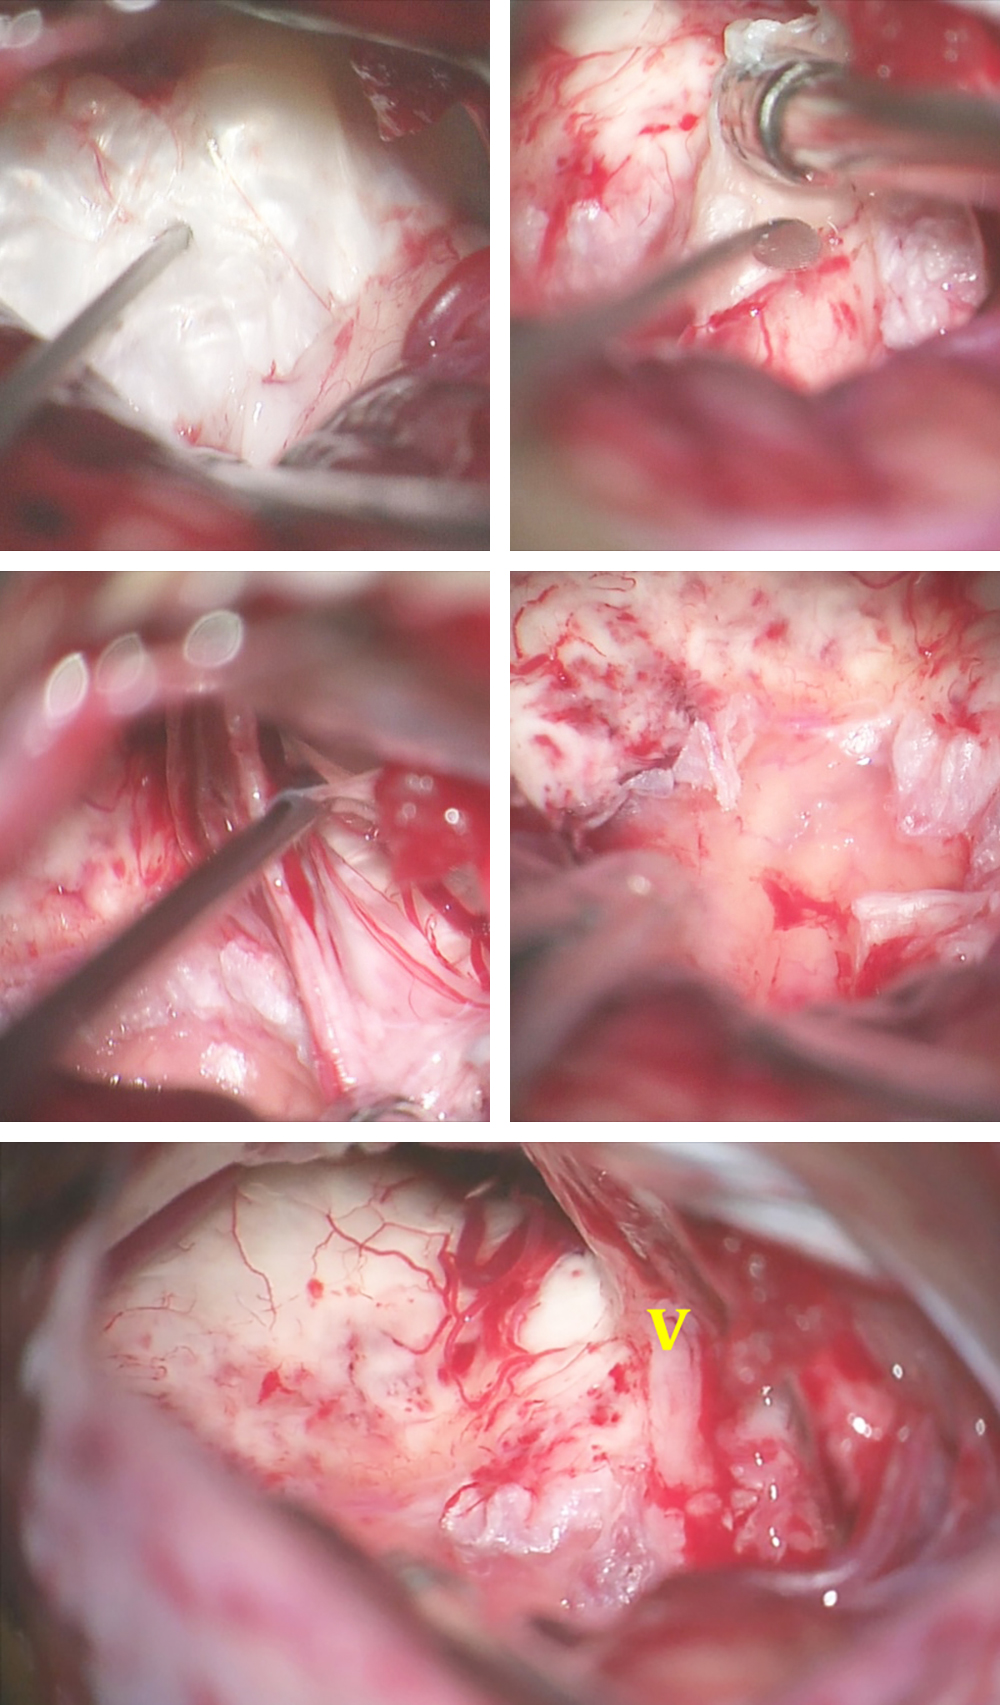 Figure 12: Epidermoid lesions of the CP angle may adhere to the brainstem around the root entry zone of CN V. The top row images show the invasion of the pia at this location. The left middle image demonstrates the dissection of the lesion from the nerve. When the tumor invades the parenchyma over a significant area, a layer of the capsule is left behind (right middle image). The final operative field is indicated in the lower photo. The initial embryologic point of tumor attachment at the root entry zone of CN V is evident.